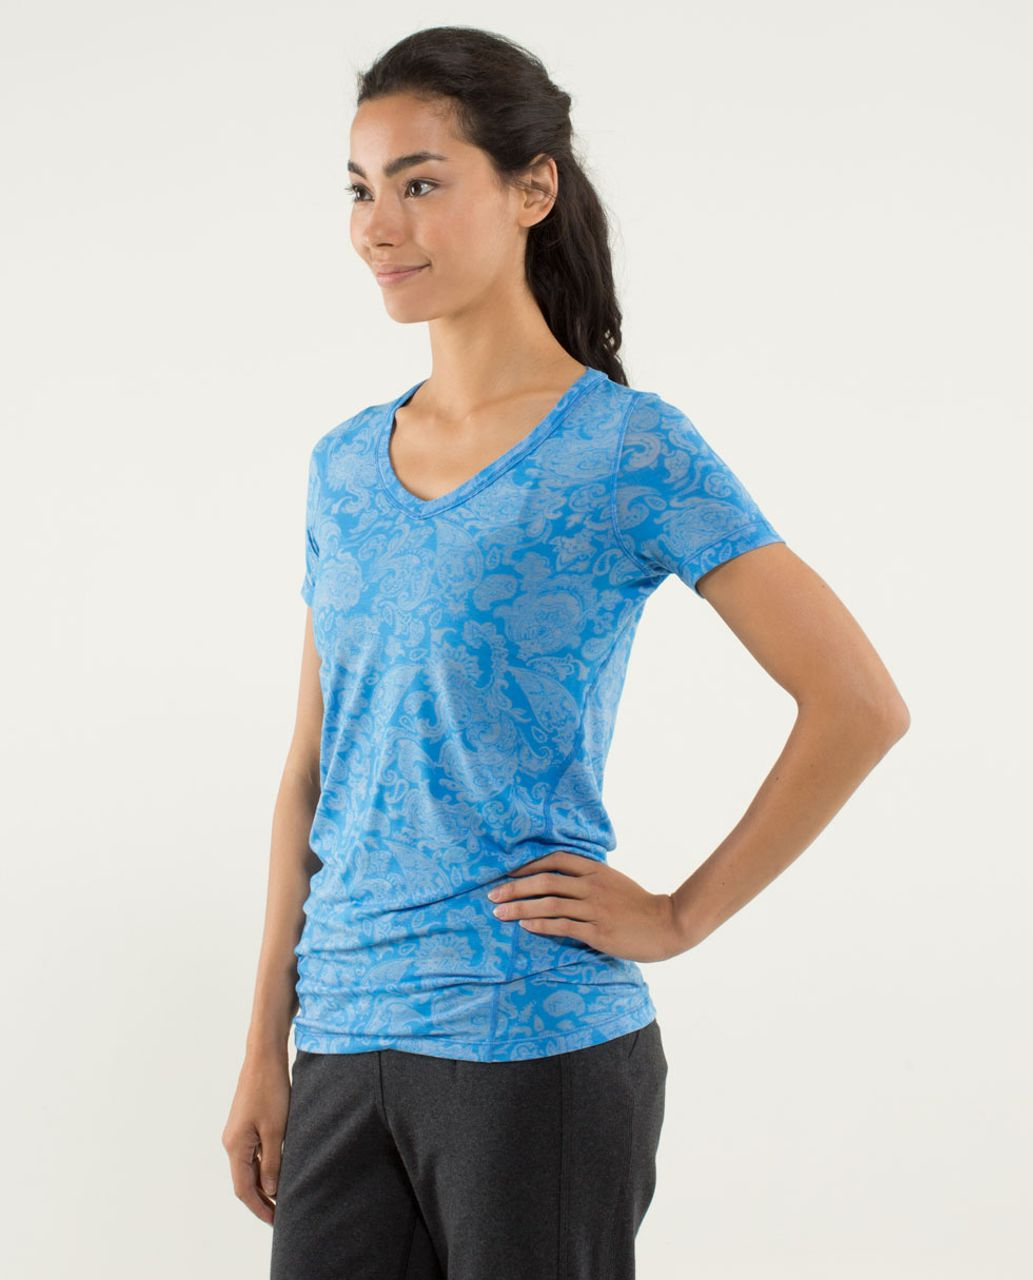 Lululemon Karmady Short Sleeve - Paisley Burnout Cornflower